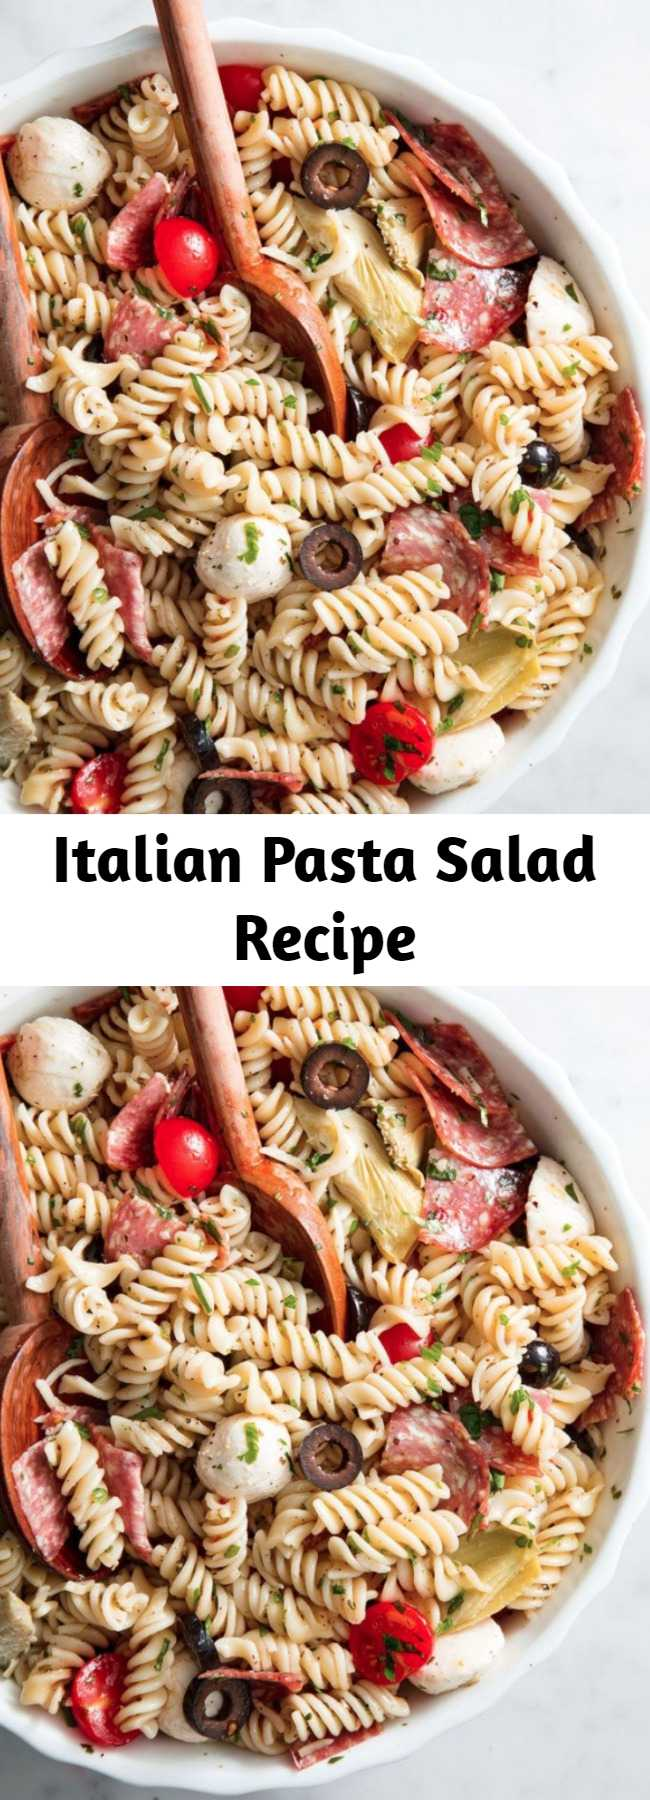 Italian Pasta Salad Recipe - This Italian Pasta Salad is the perfect dish to bring to your summer potluck.